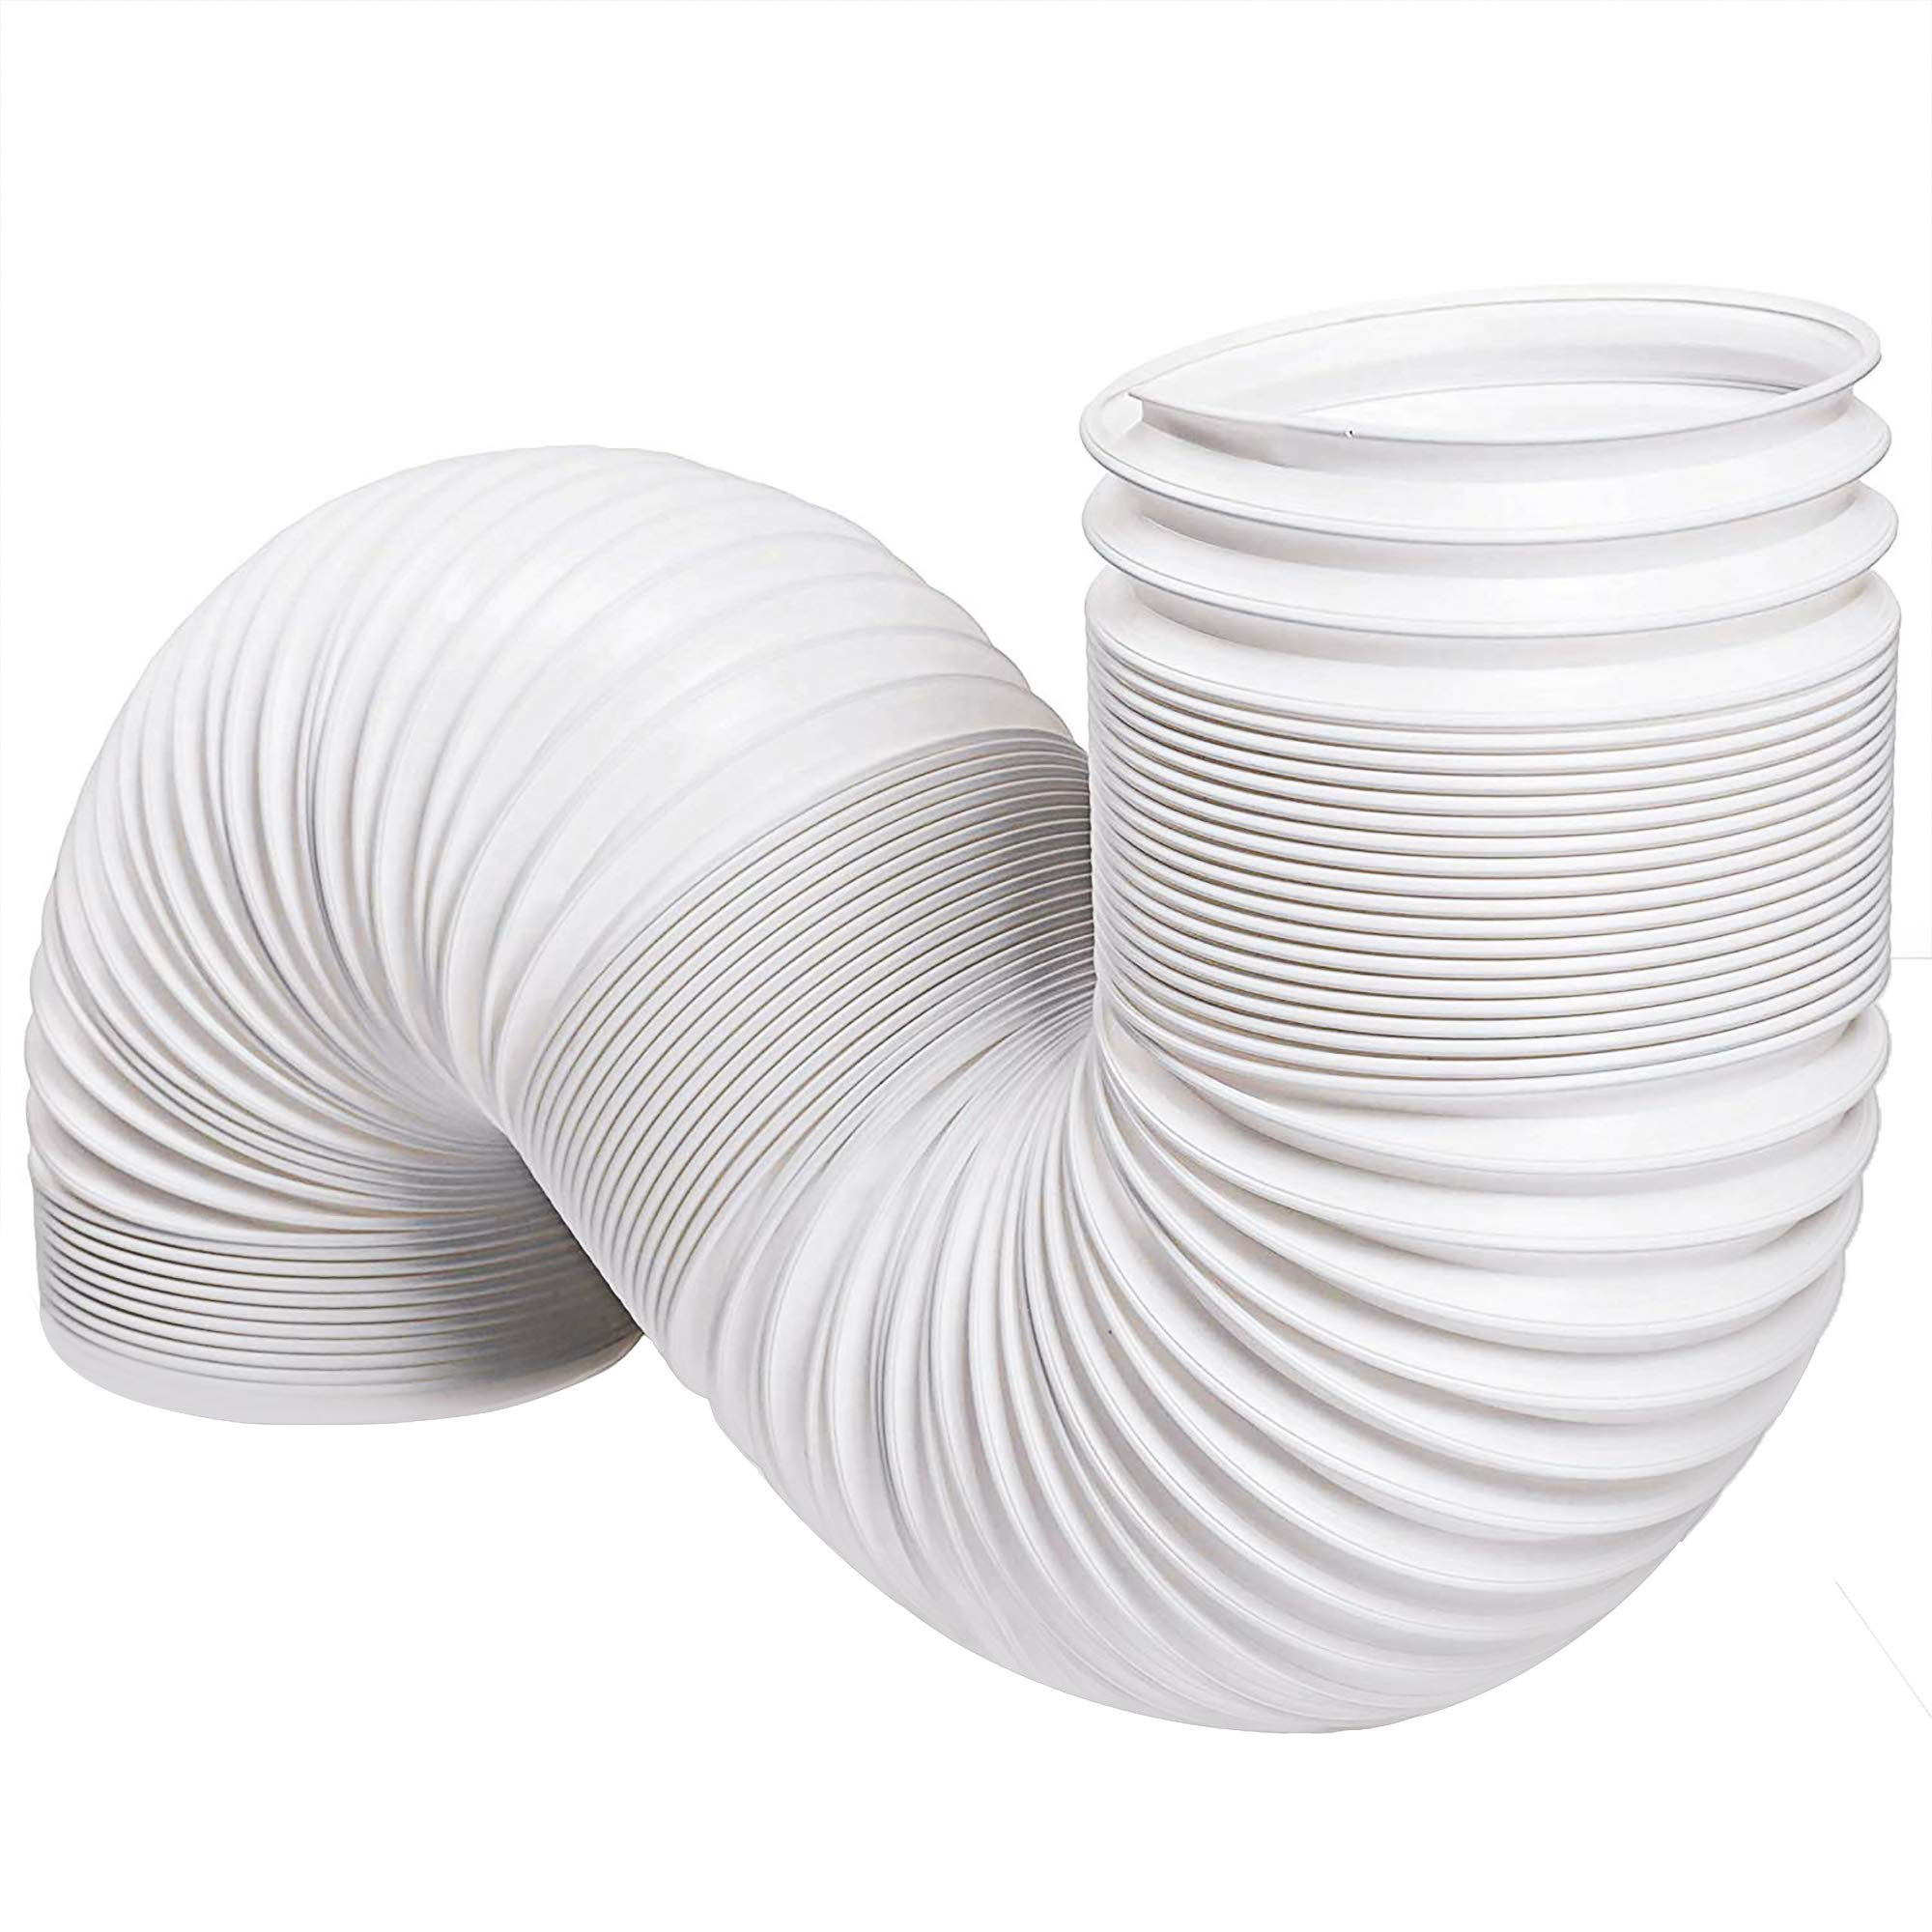 Portable Air Conditioner Exhaust Hose (78'' Long) 5 Inch Diameter, Counter-Clockwise Threads   AC Conditioning Unit Tubing   Flexible, Extendable Design   White  by Prime Package